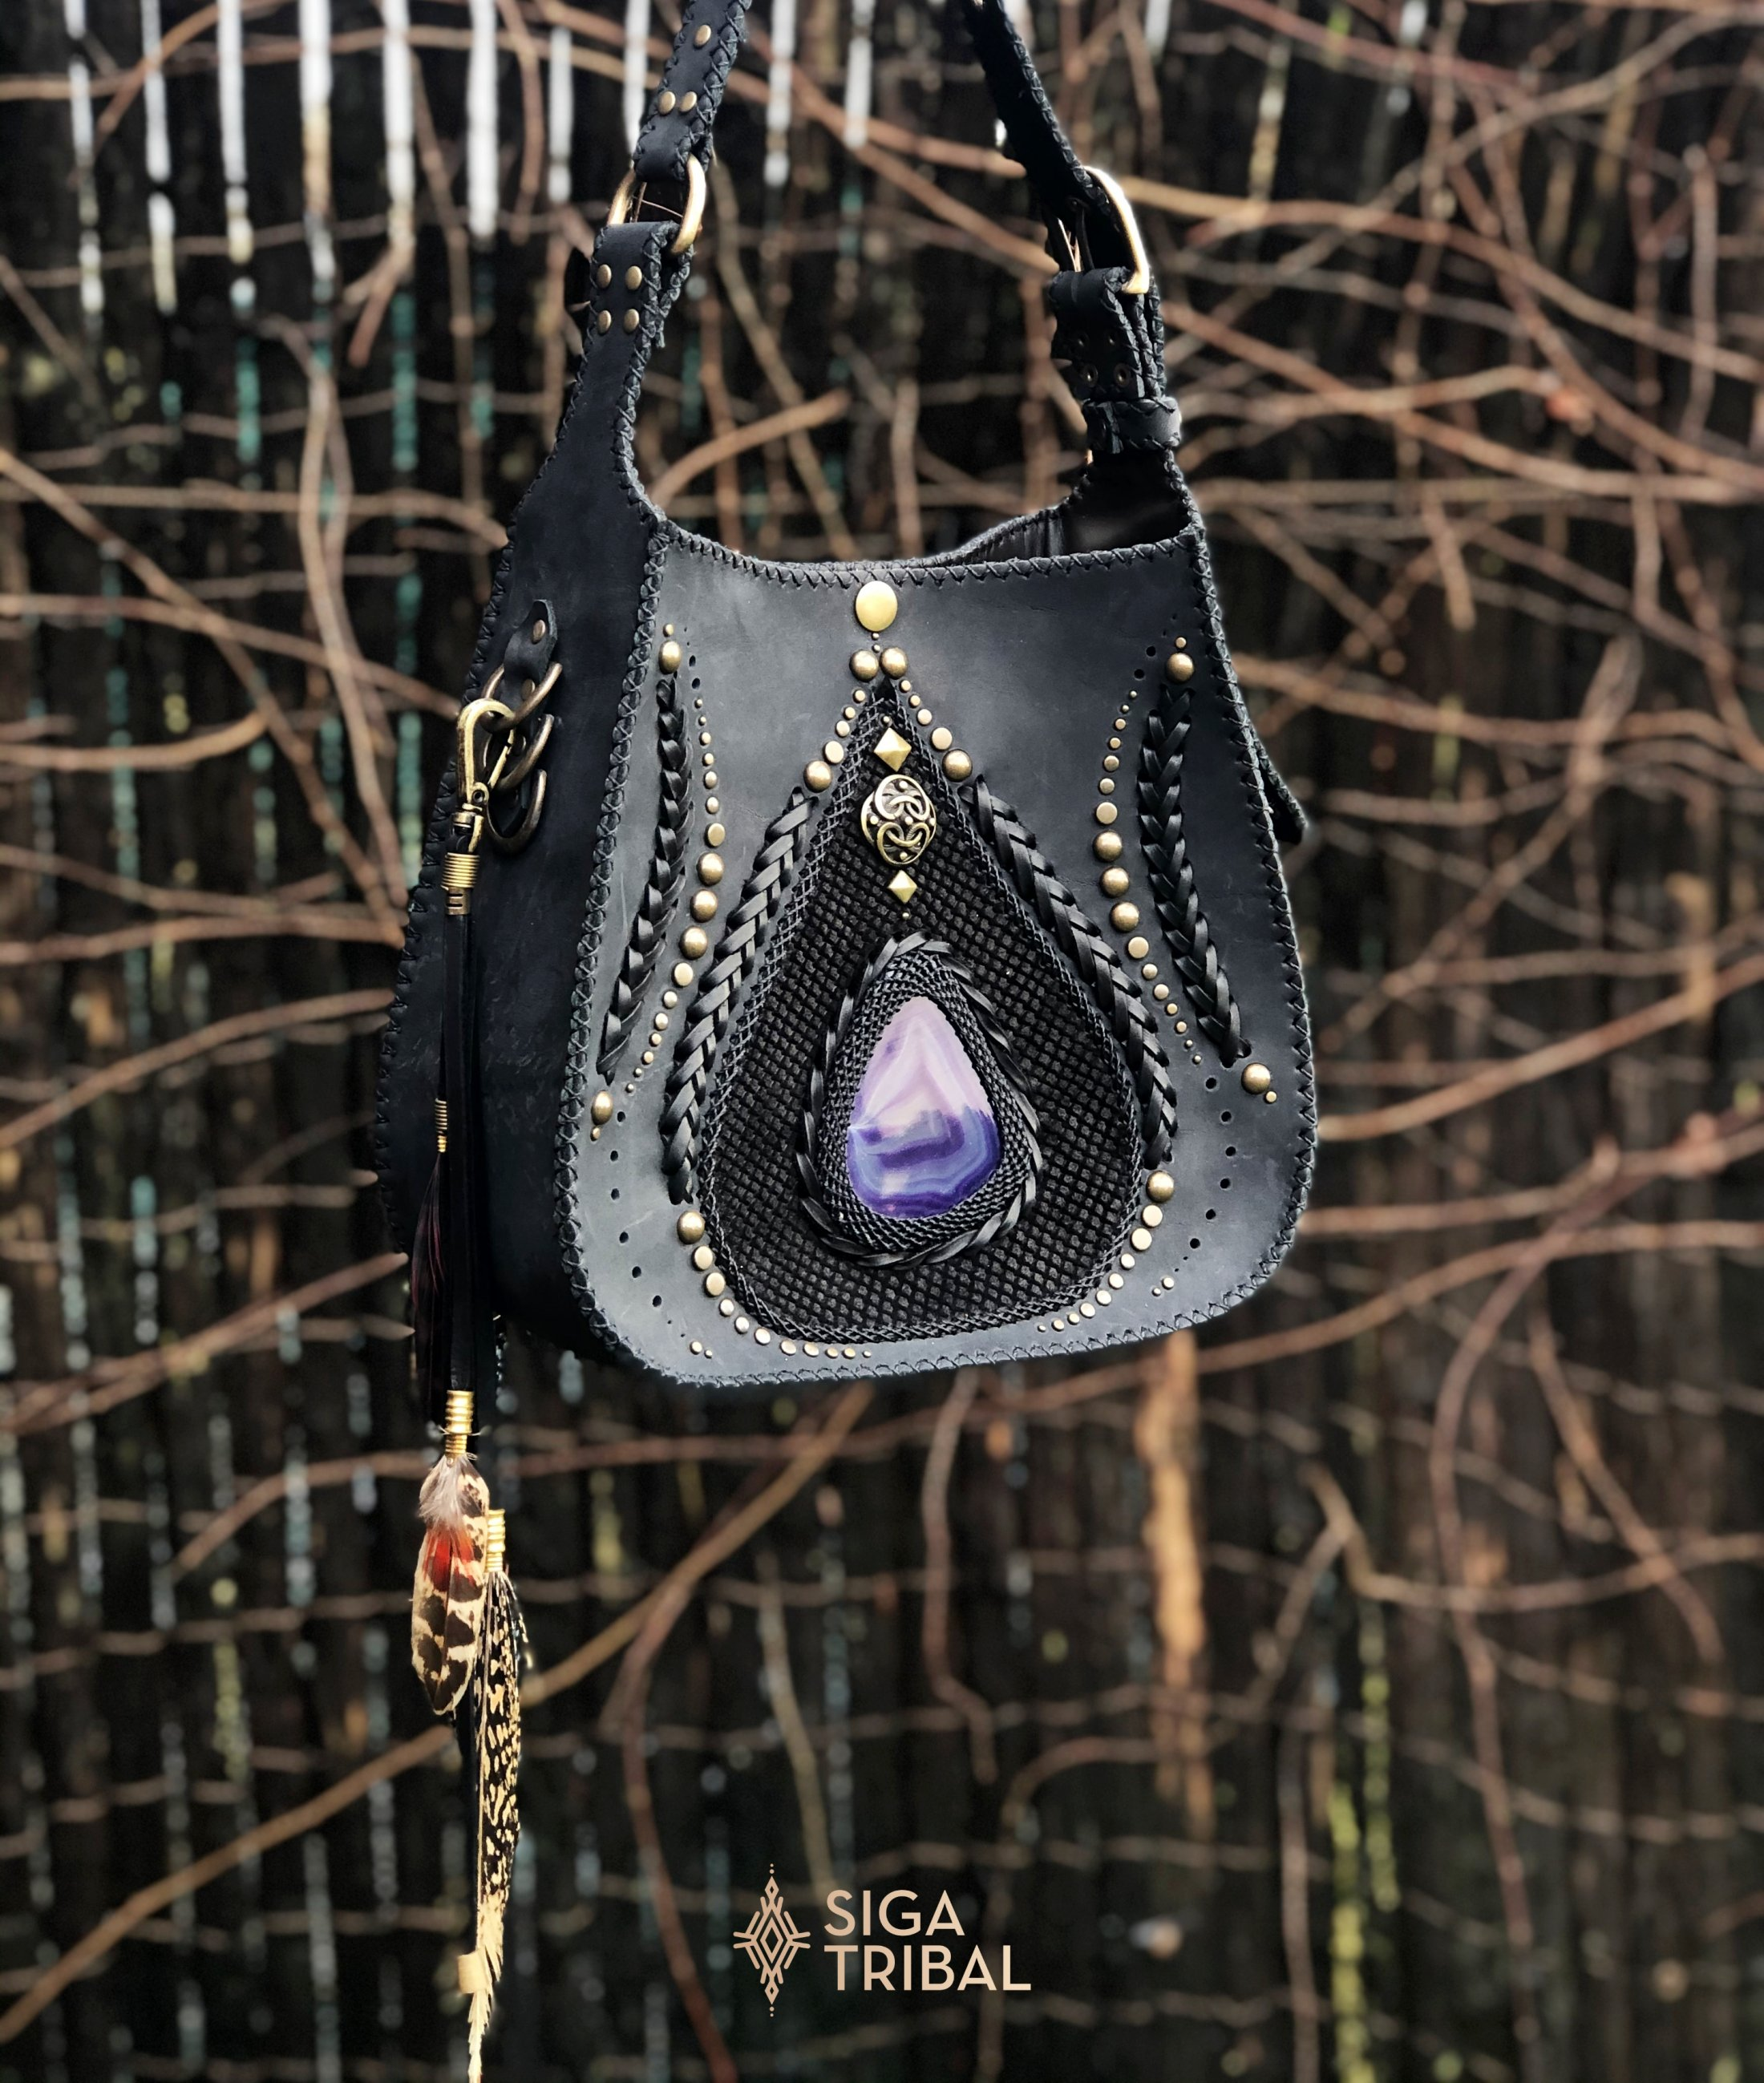 NEPTUNE BAG by Siga Tribal